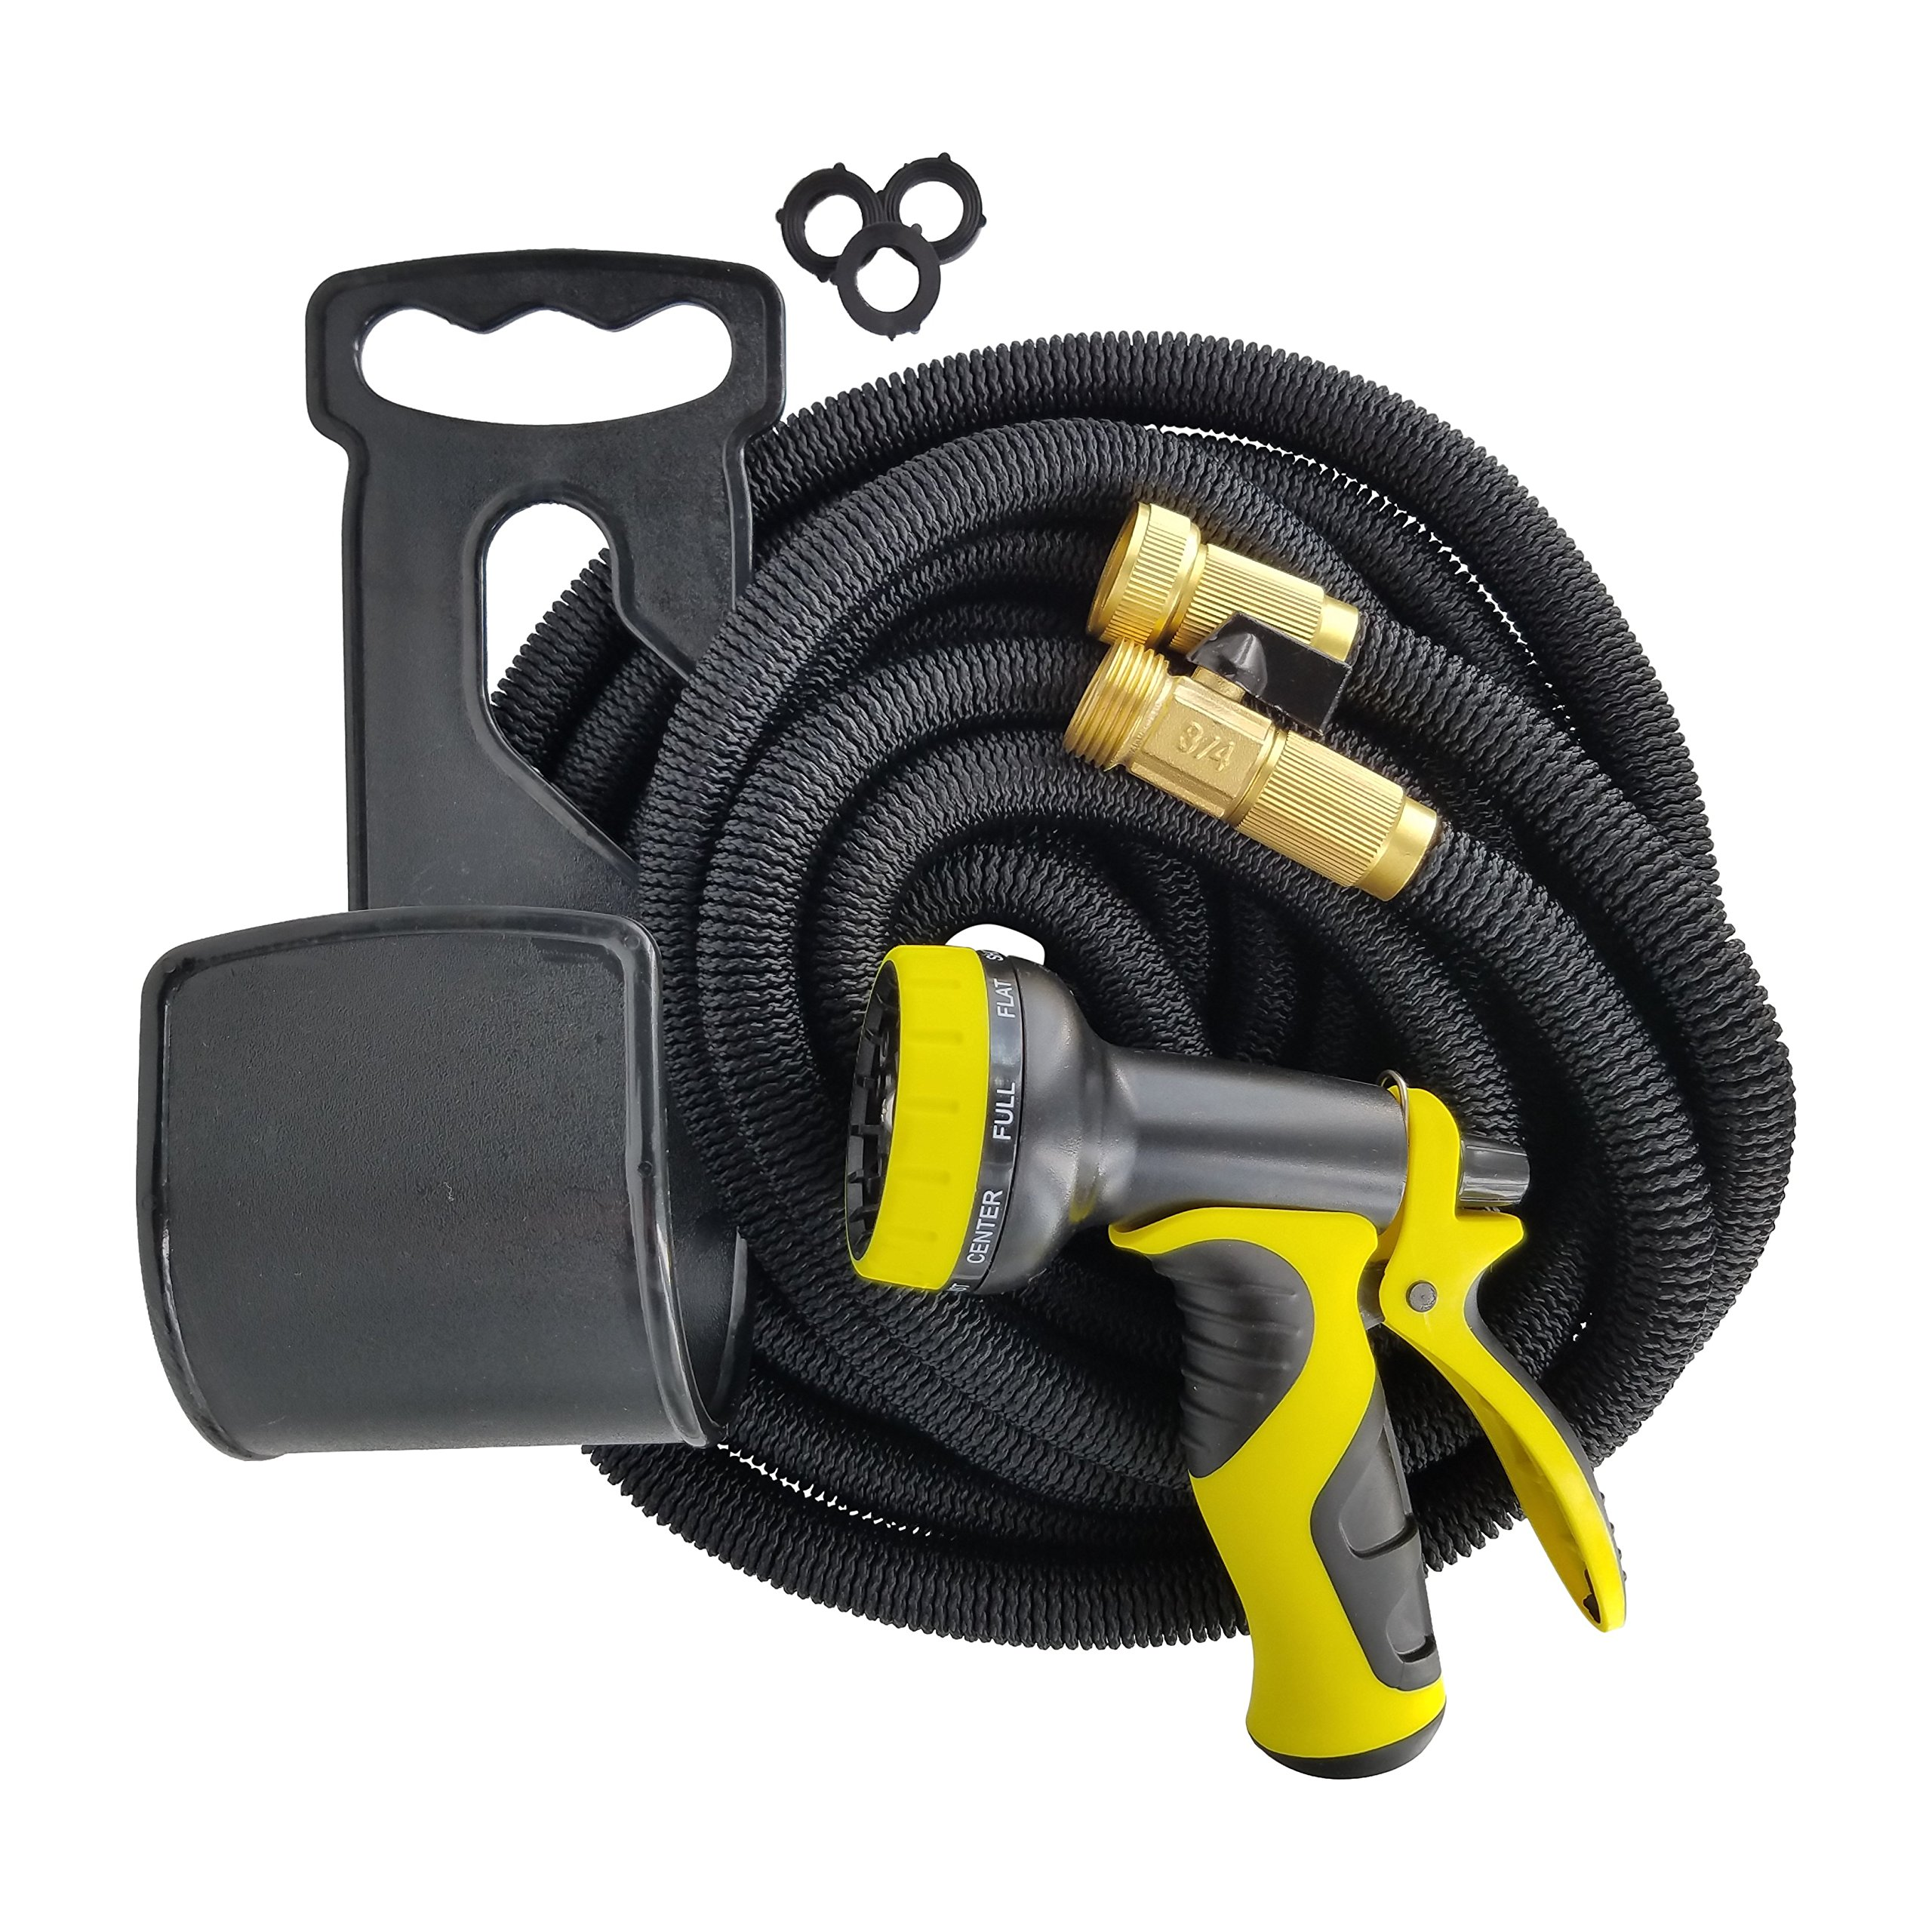 Garden Wand 50 Foot, Valved Brass Fitting, 4X Expandable, Kink Proof Garden Hose with 8 Pattern Spray Nozzle and Accessories (Yellow/ Black)